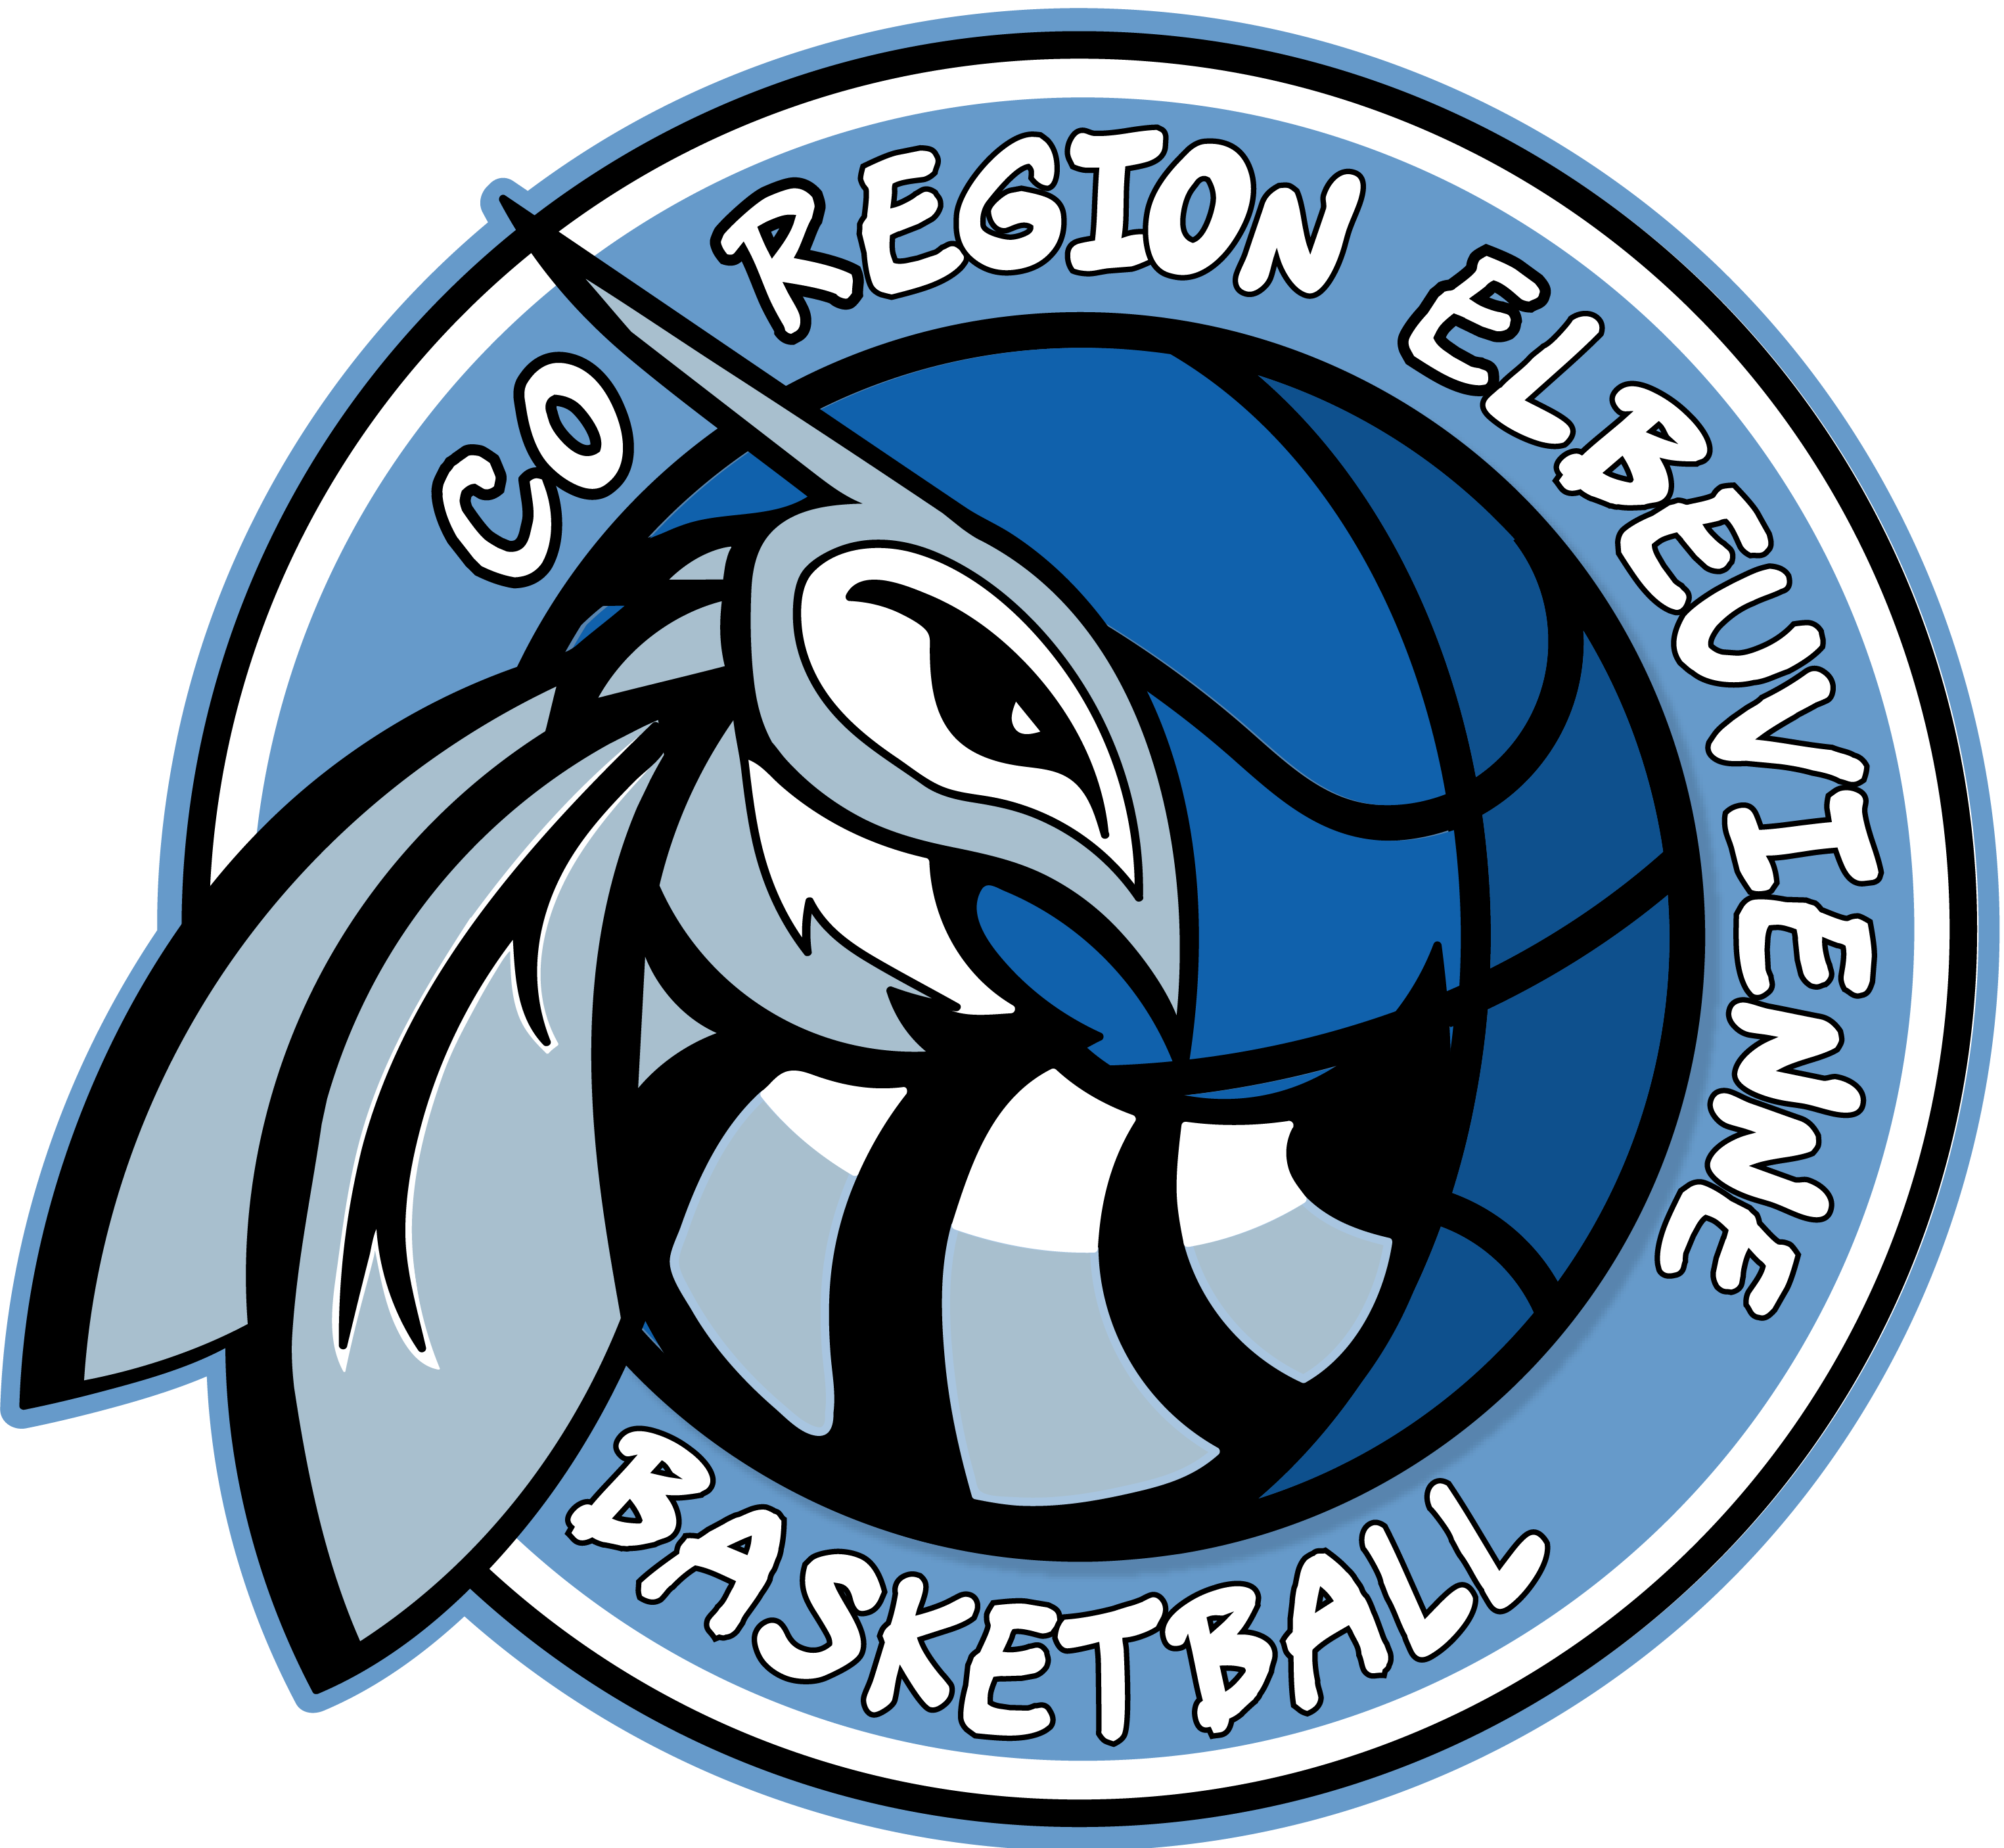 Club Omnisport Région Elbeuvienne - section basketball logo